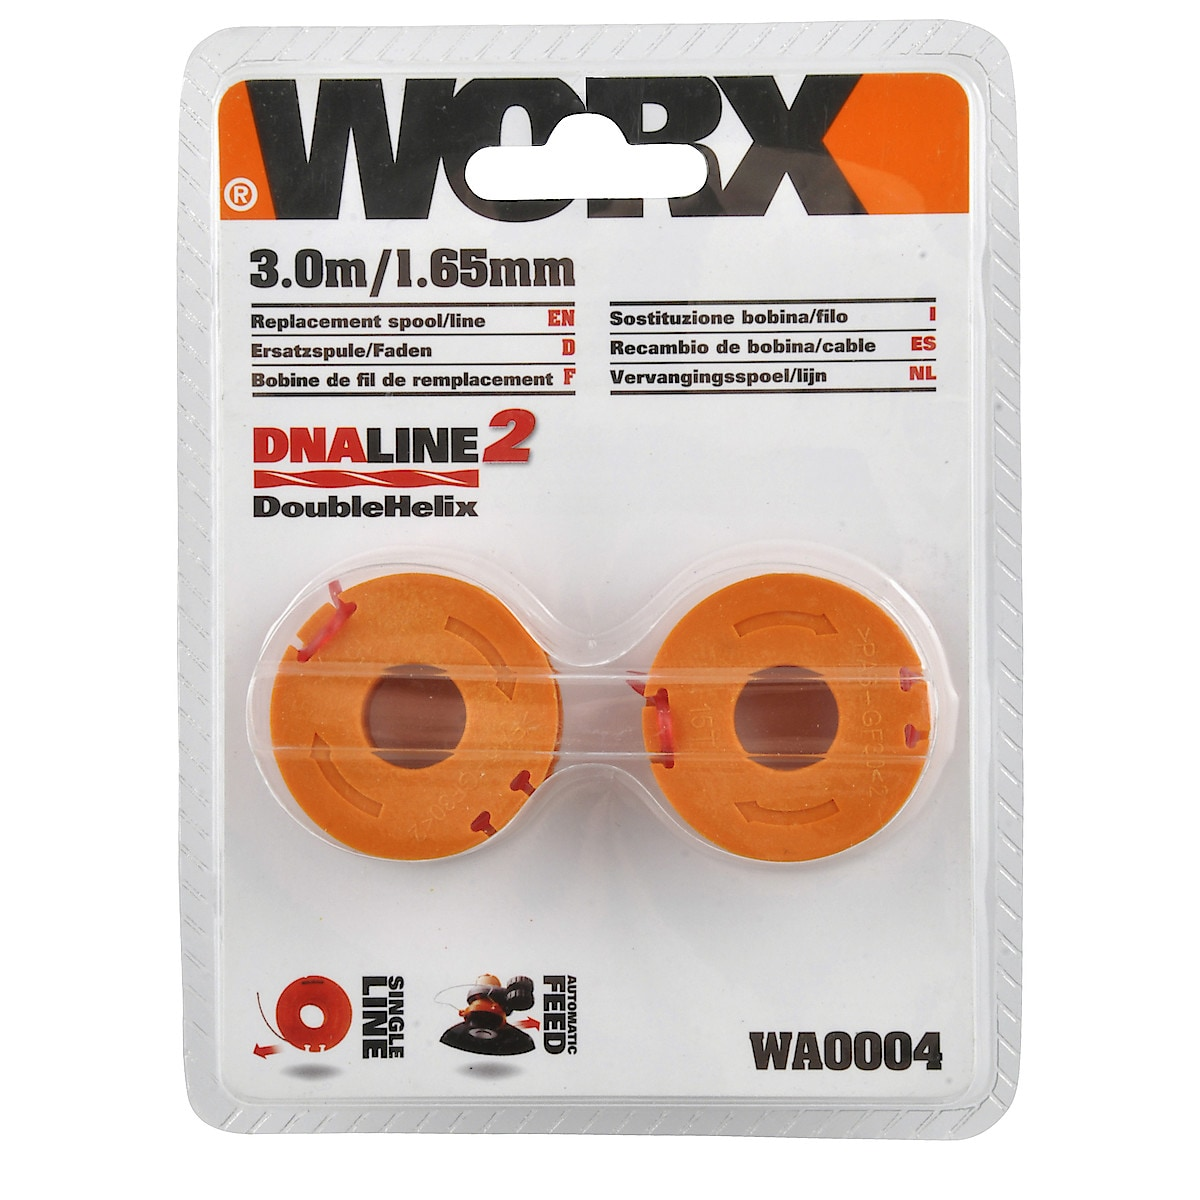 Worx WA004 Trimmer Line and Spool